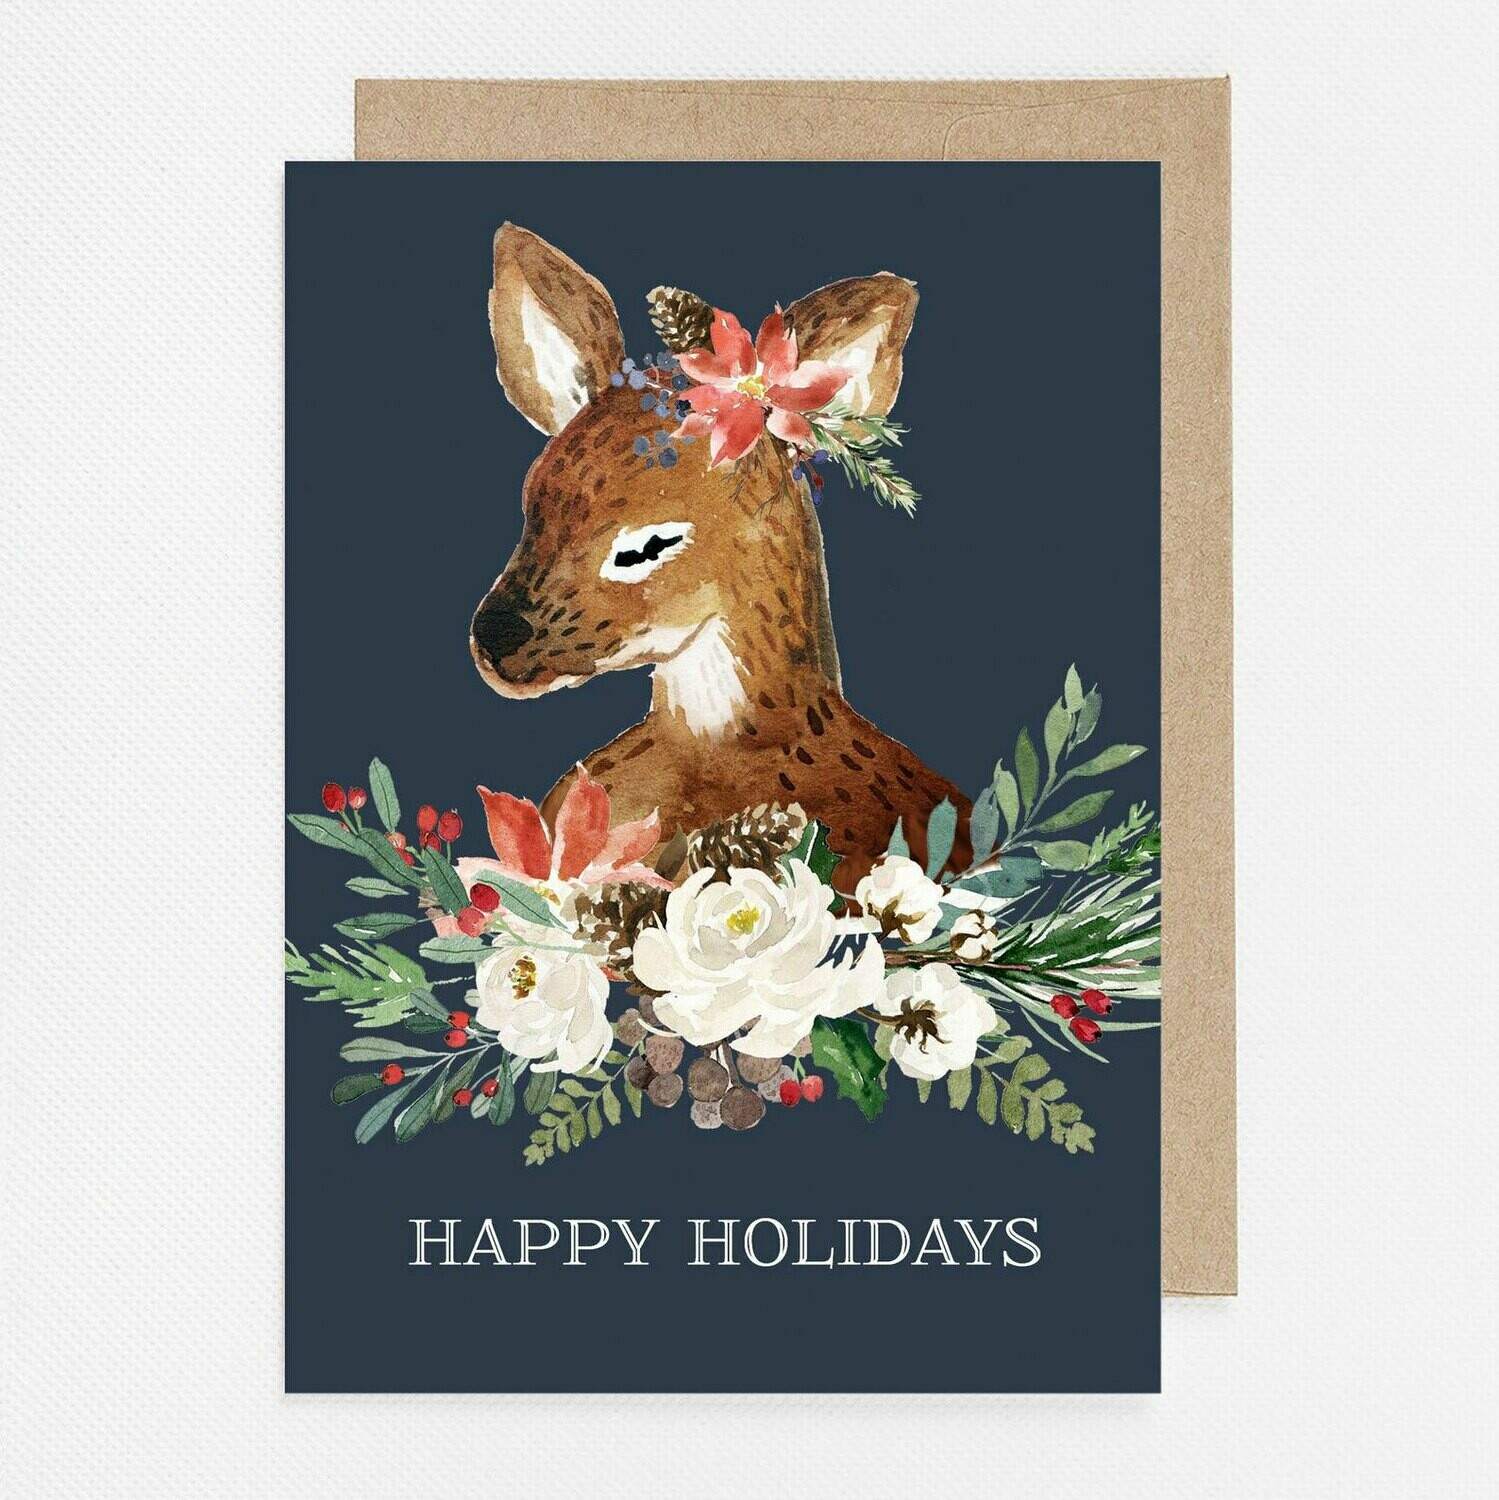 Sweet Winter Deer Watercolor Christmas Card with inside text